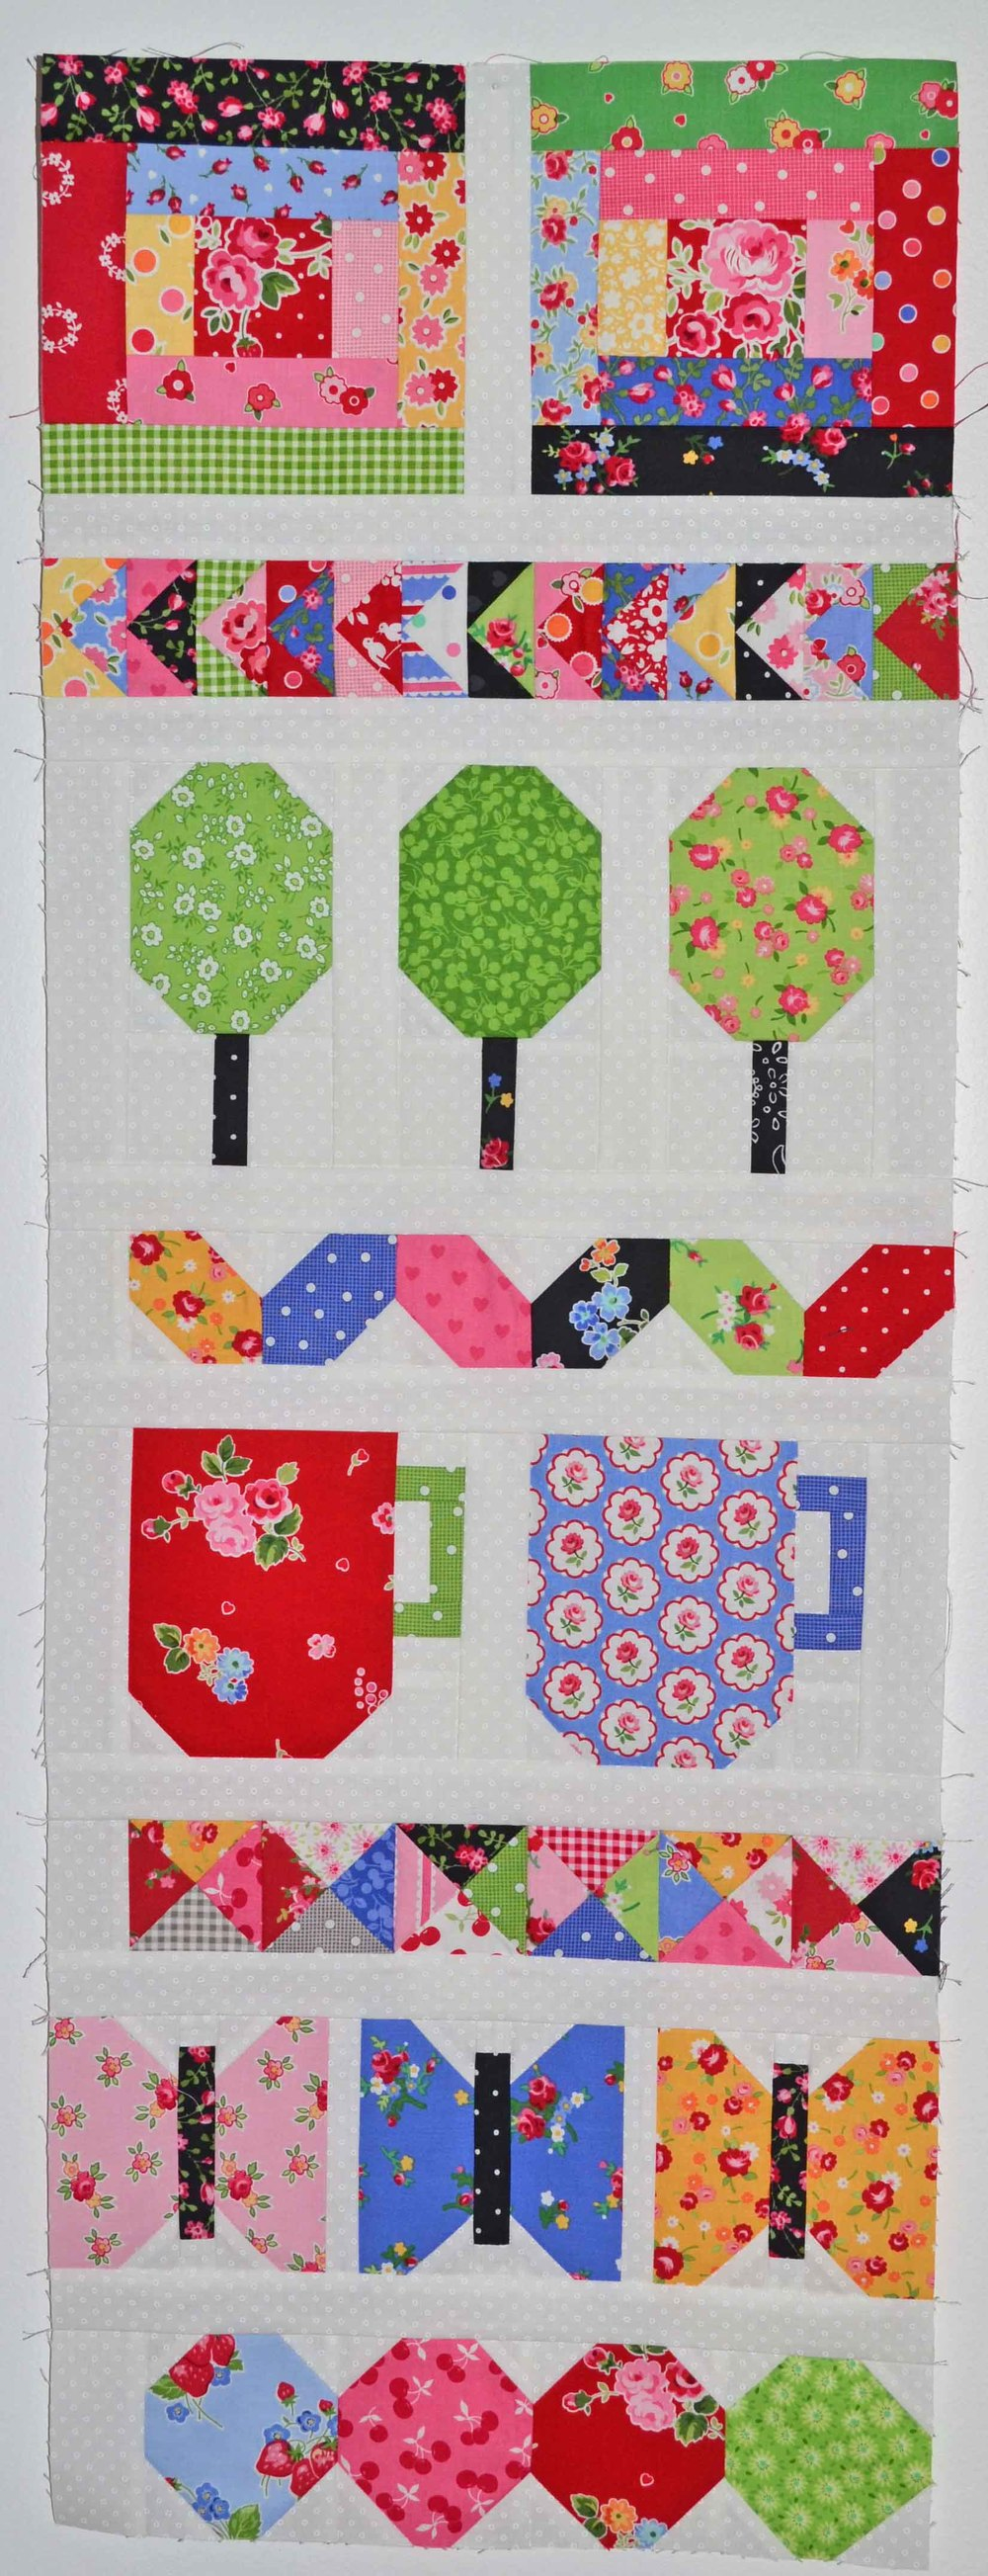 quilty fun right side 002.JPG